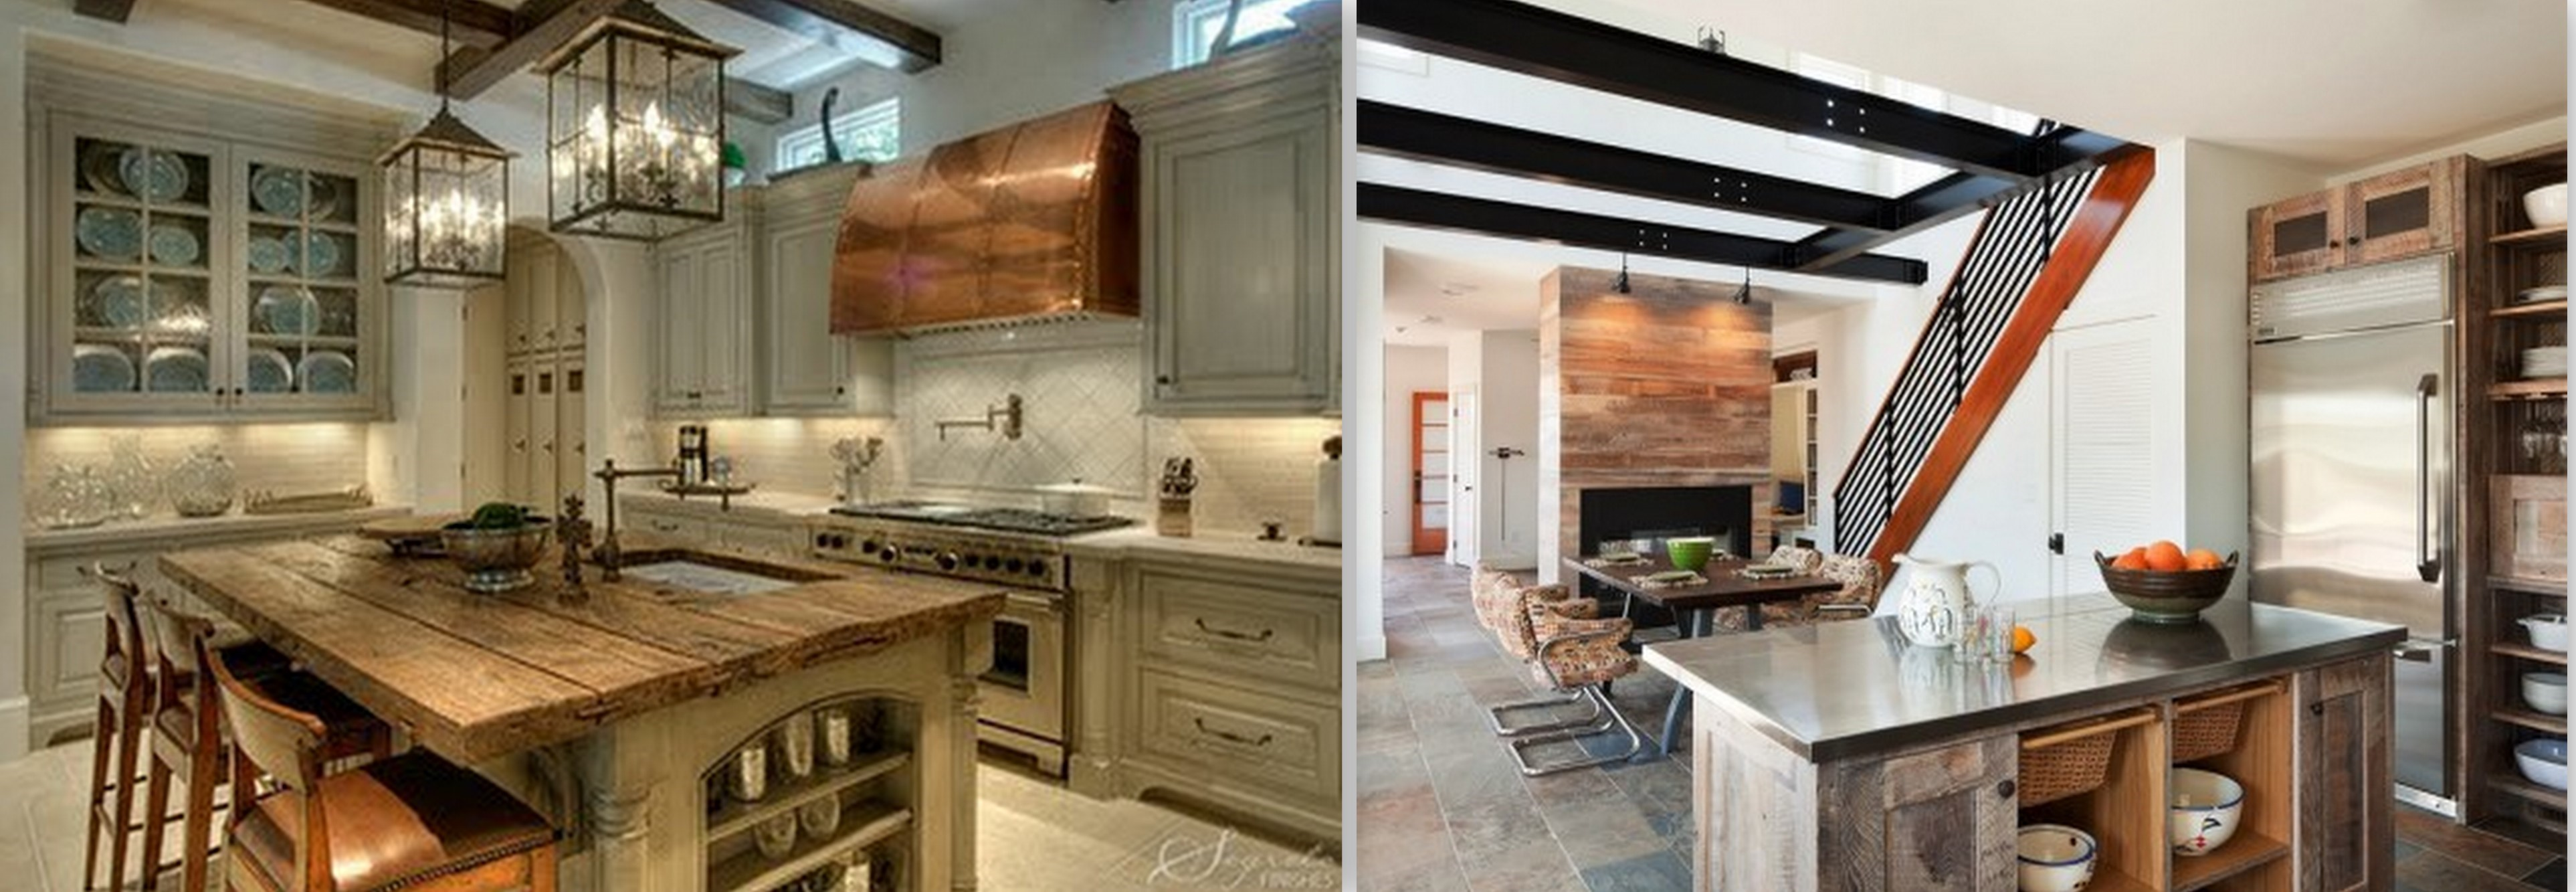 Reclaimed Wood Kitchen Cabinets Rustic House To Home Blog